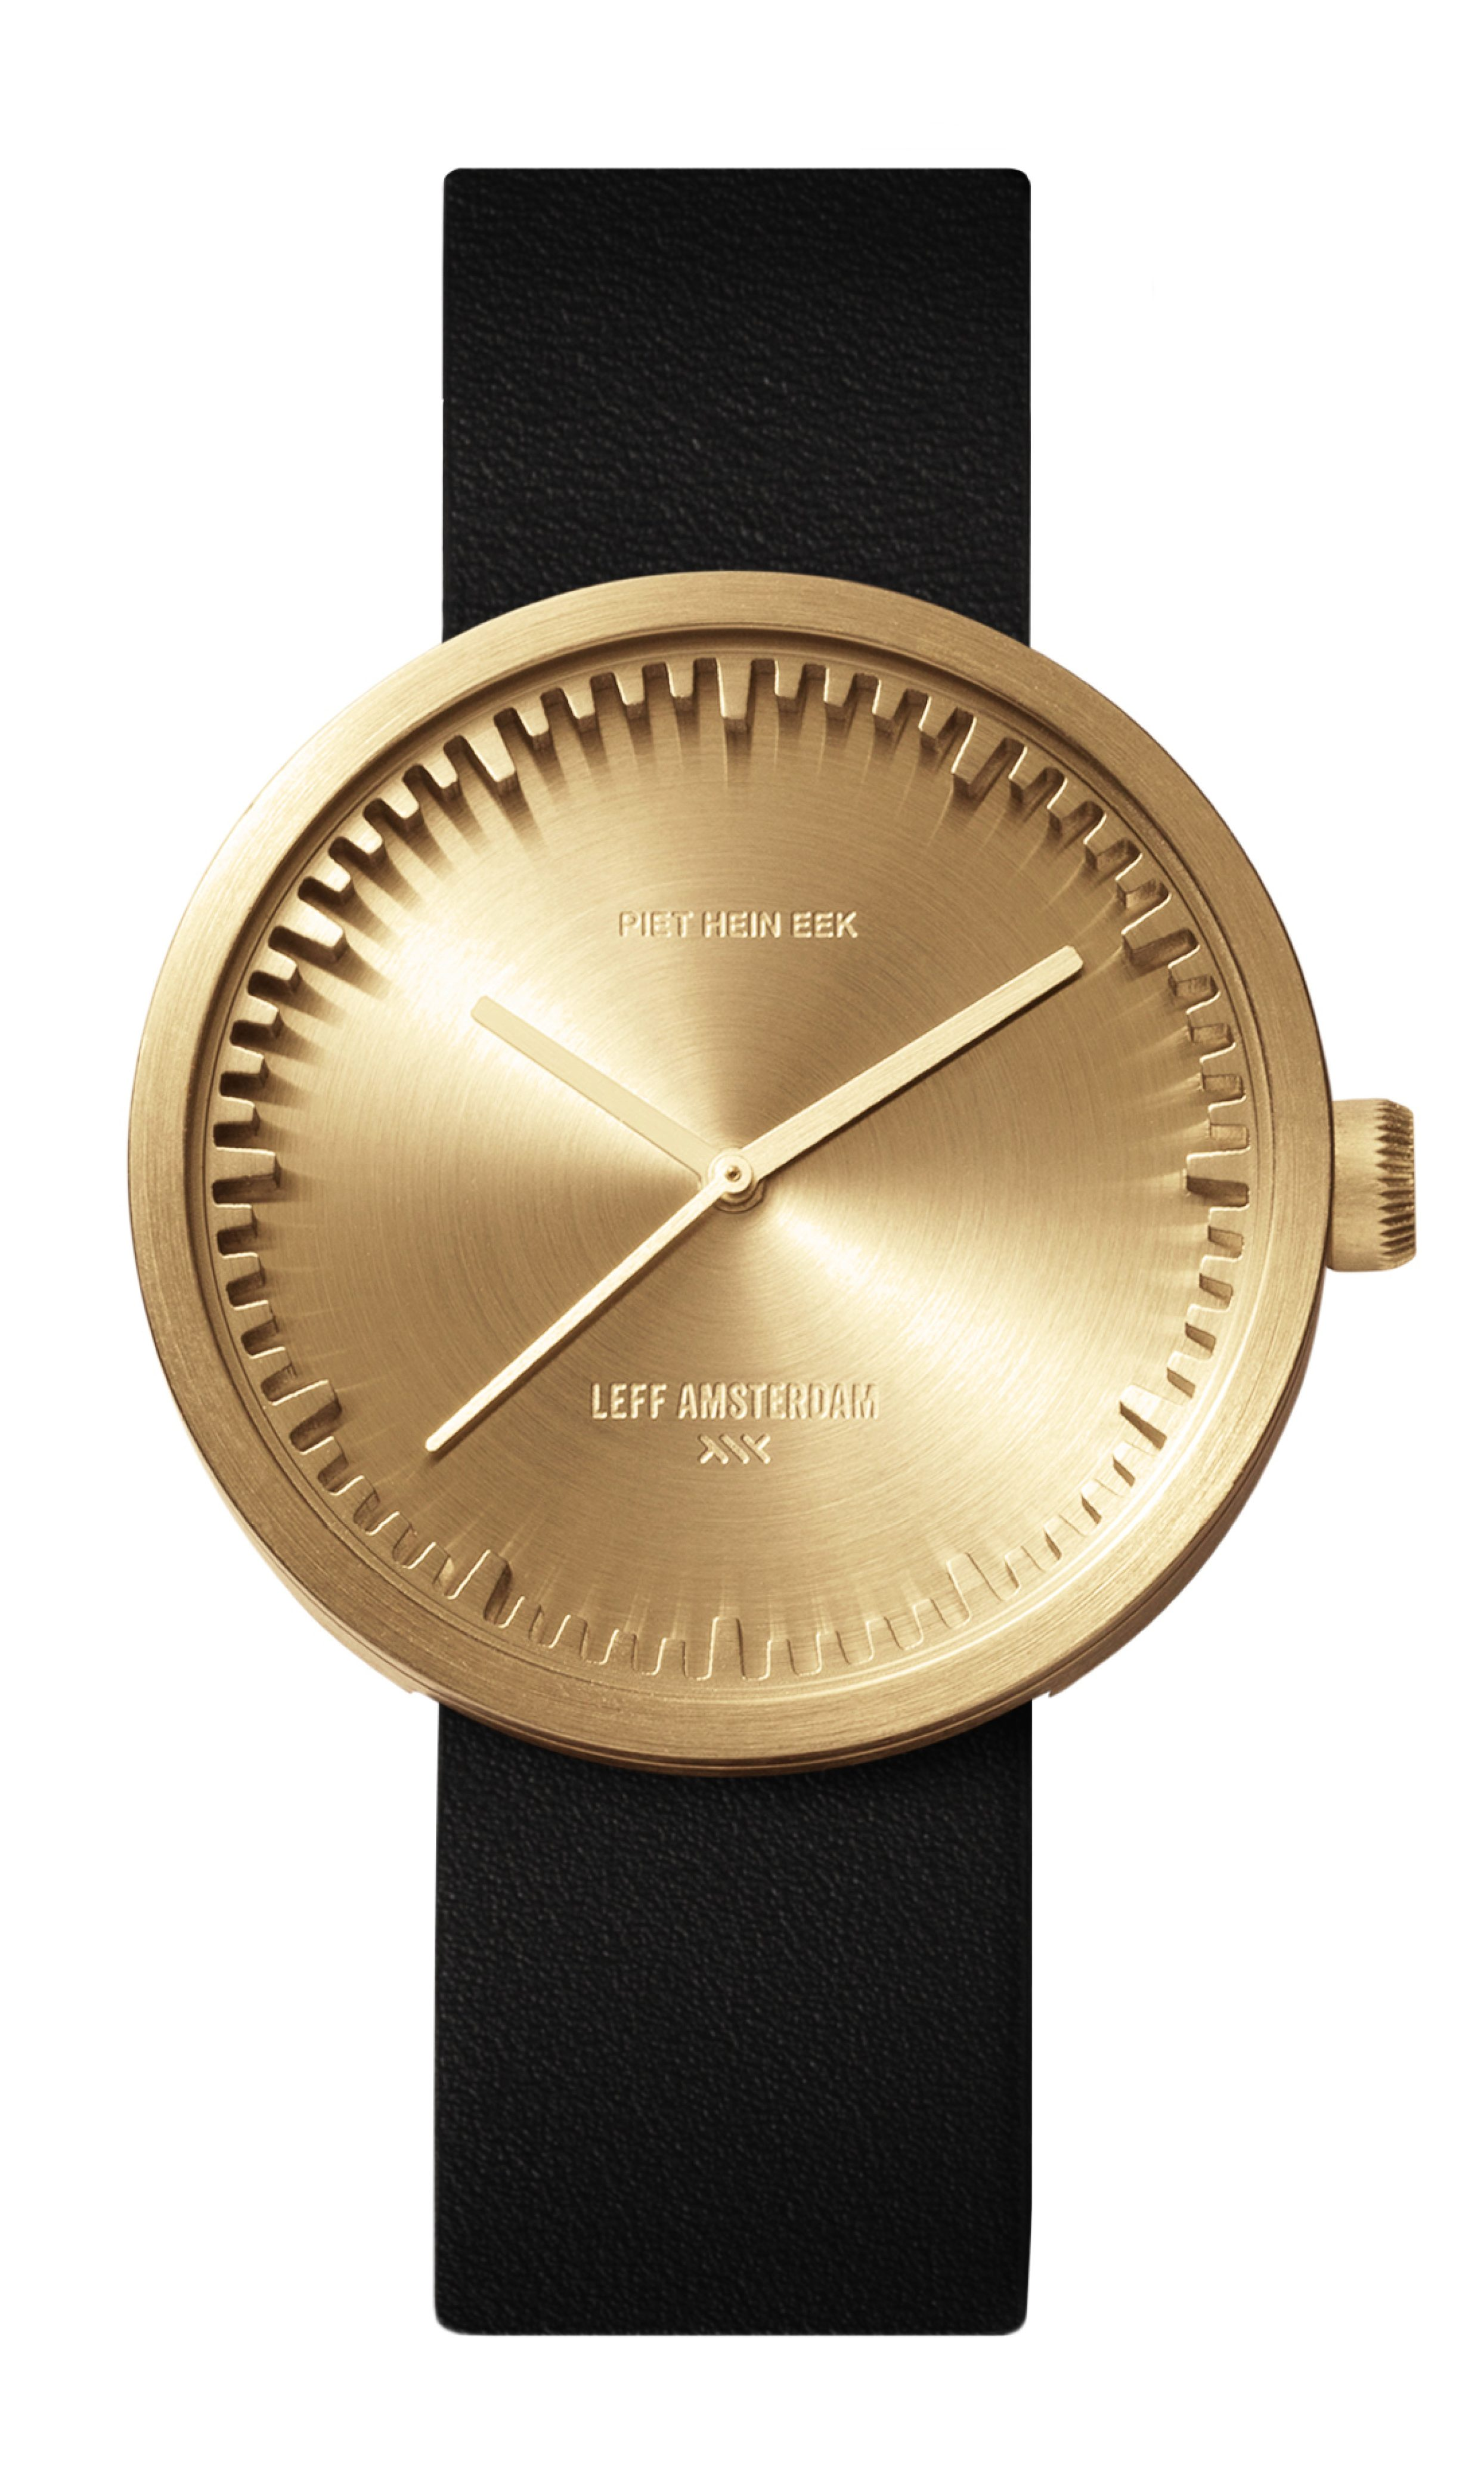 1) D42 brass case black leather strap tube watch leff amsterdam design by piet hein eek_front